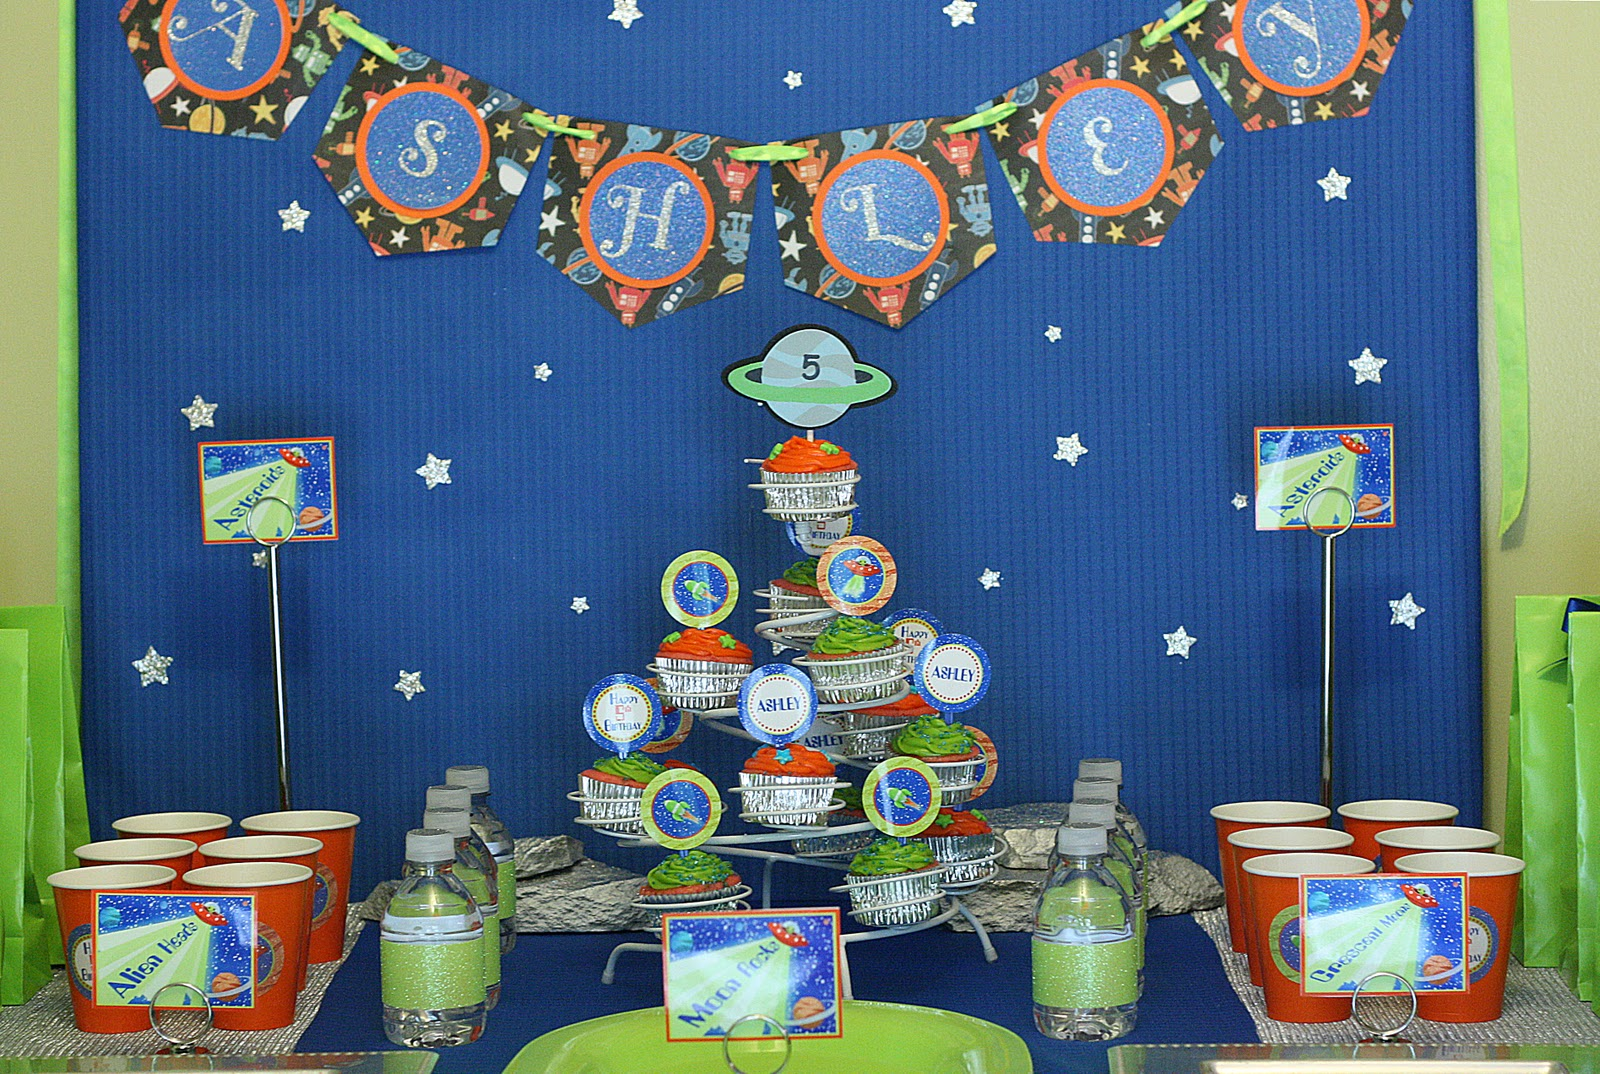 Solar system party ideas page 2 pics about space - Solar system decorations ...